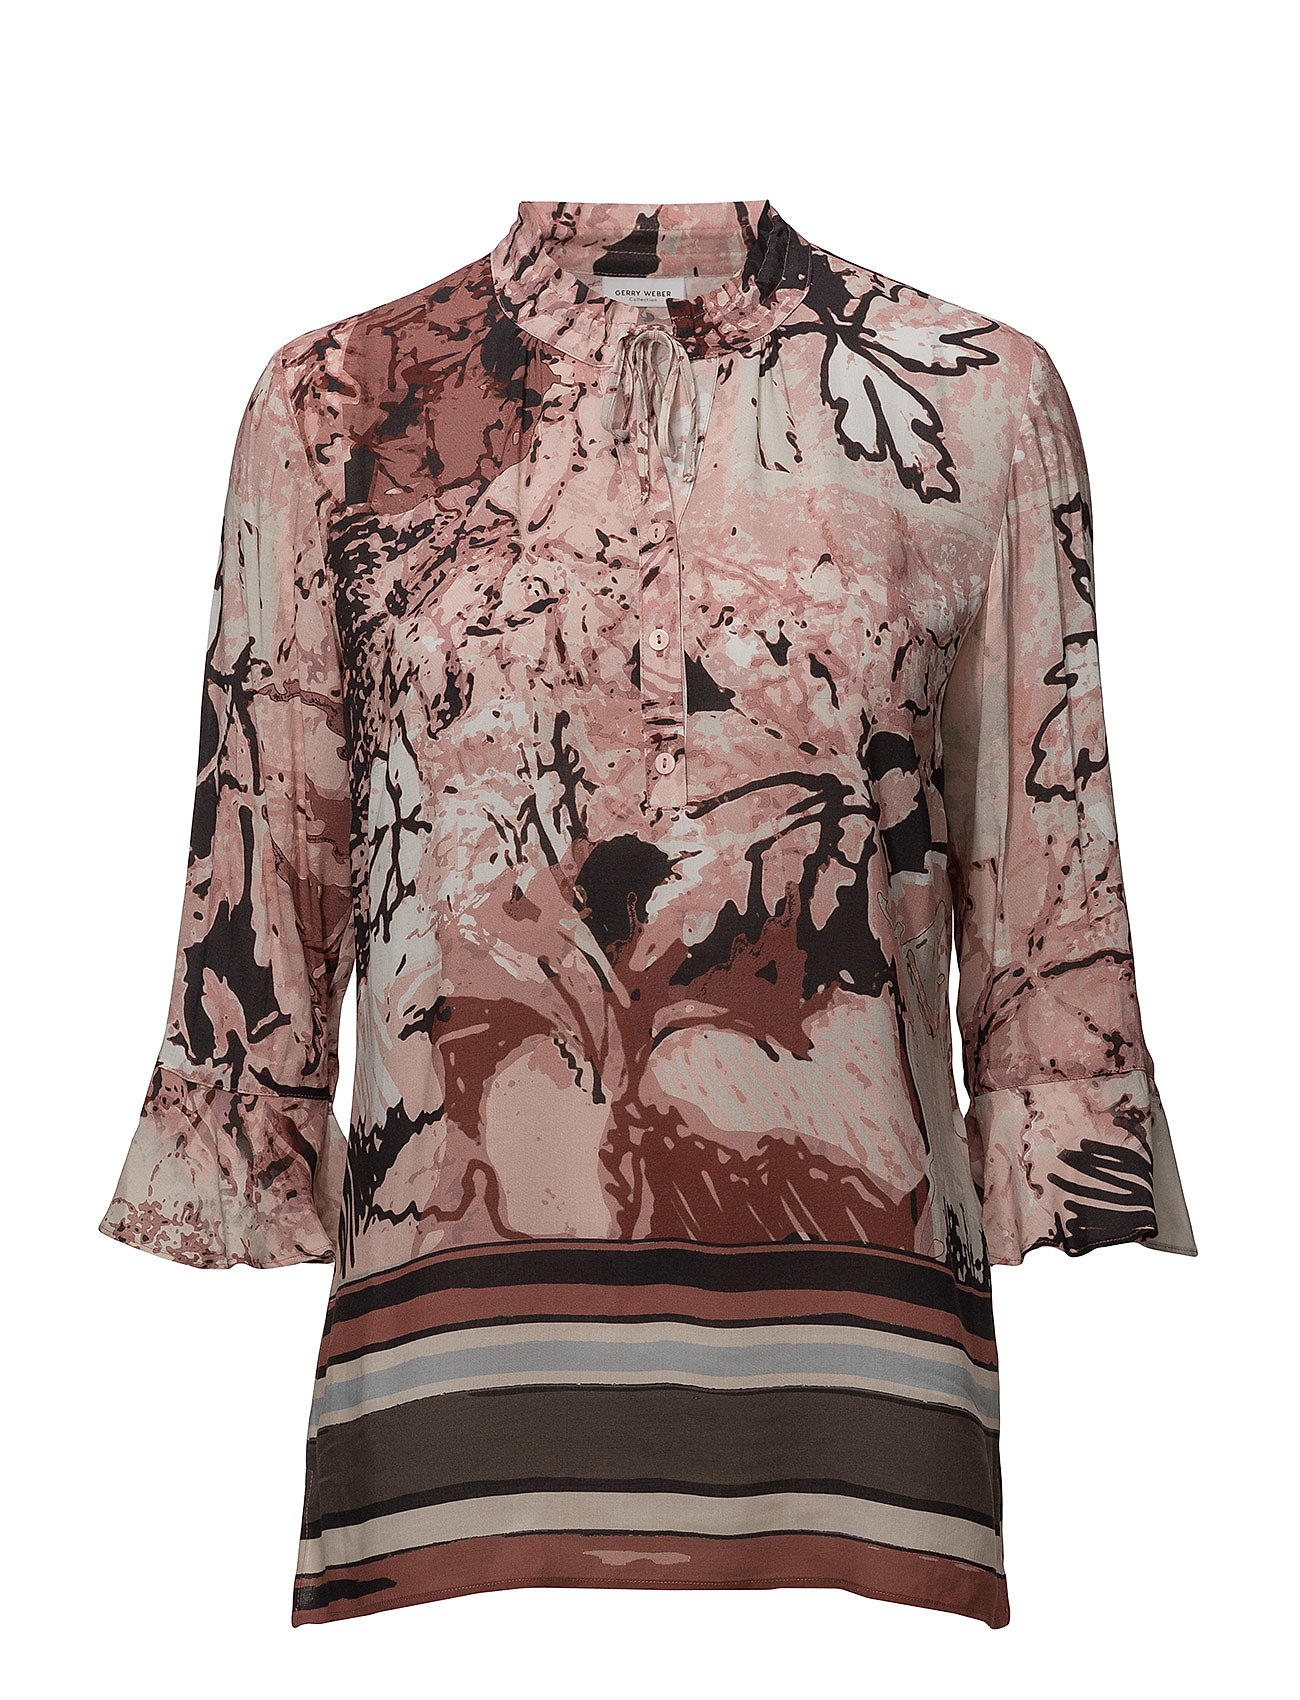 Gerry Weber BLOUSE 3/4-SLEEVE - ECRU/ ROSE/ TRUFLE PRINT